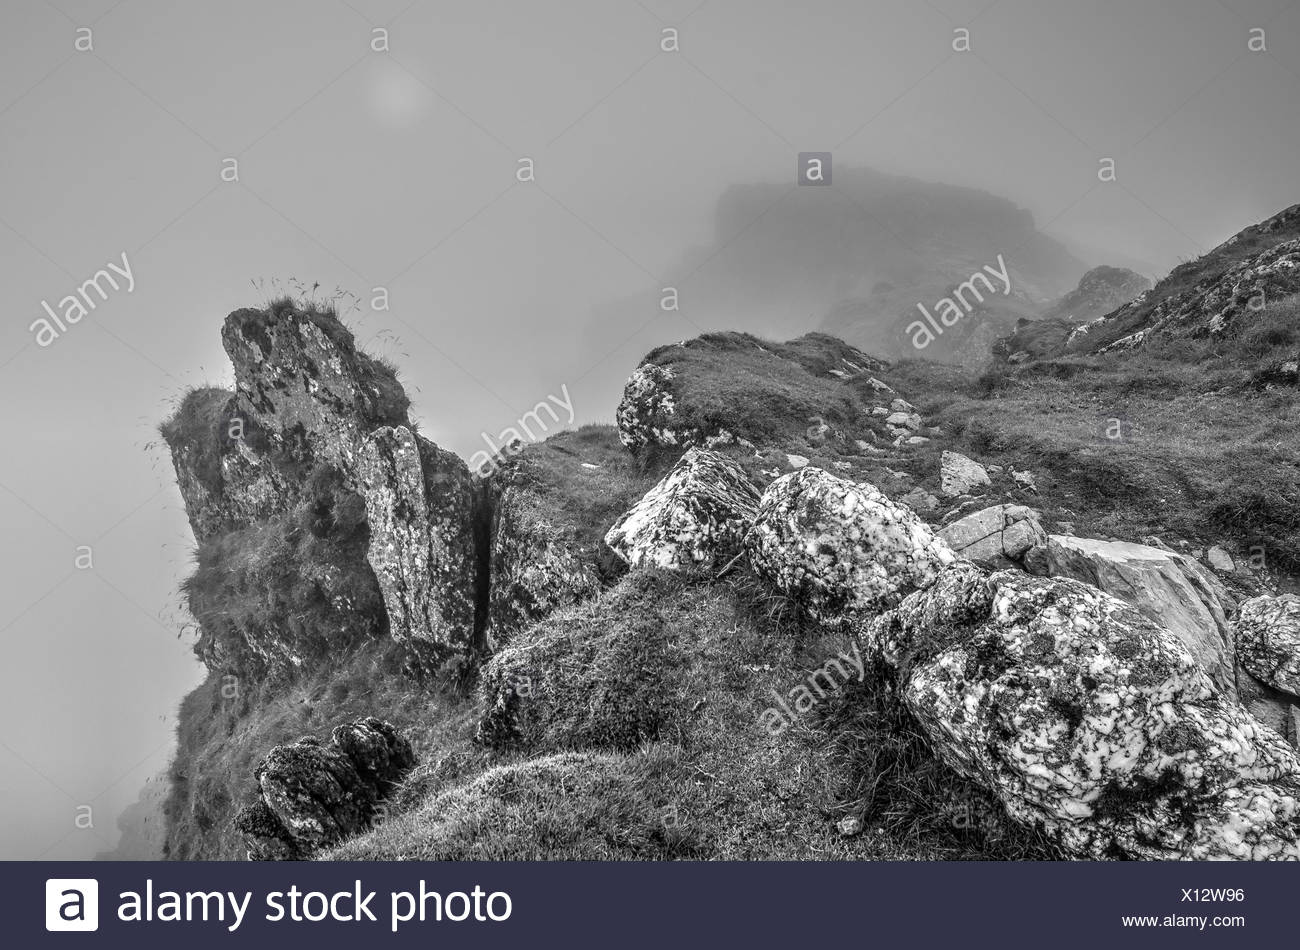 Craggy Mountain Top in Fog with Weak Sun - Stock Image